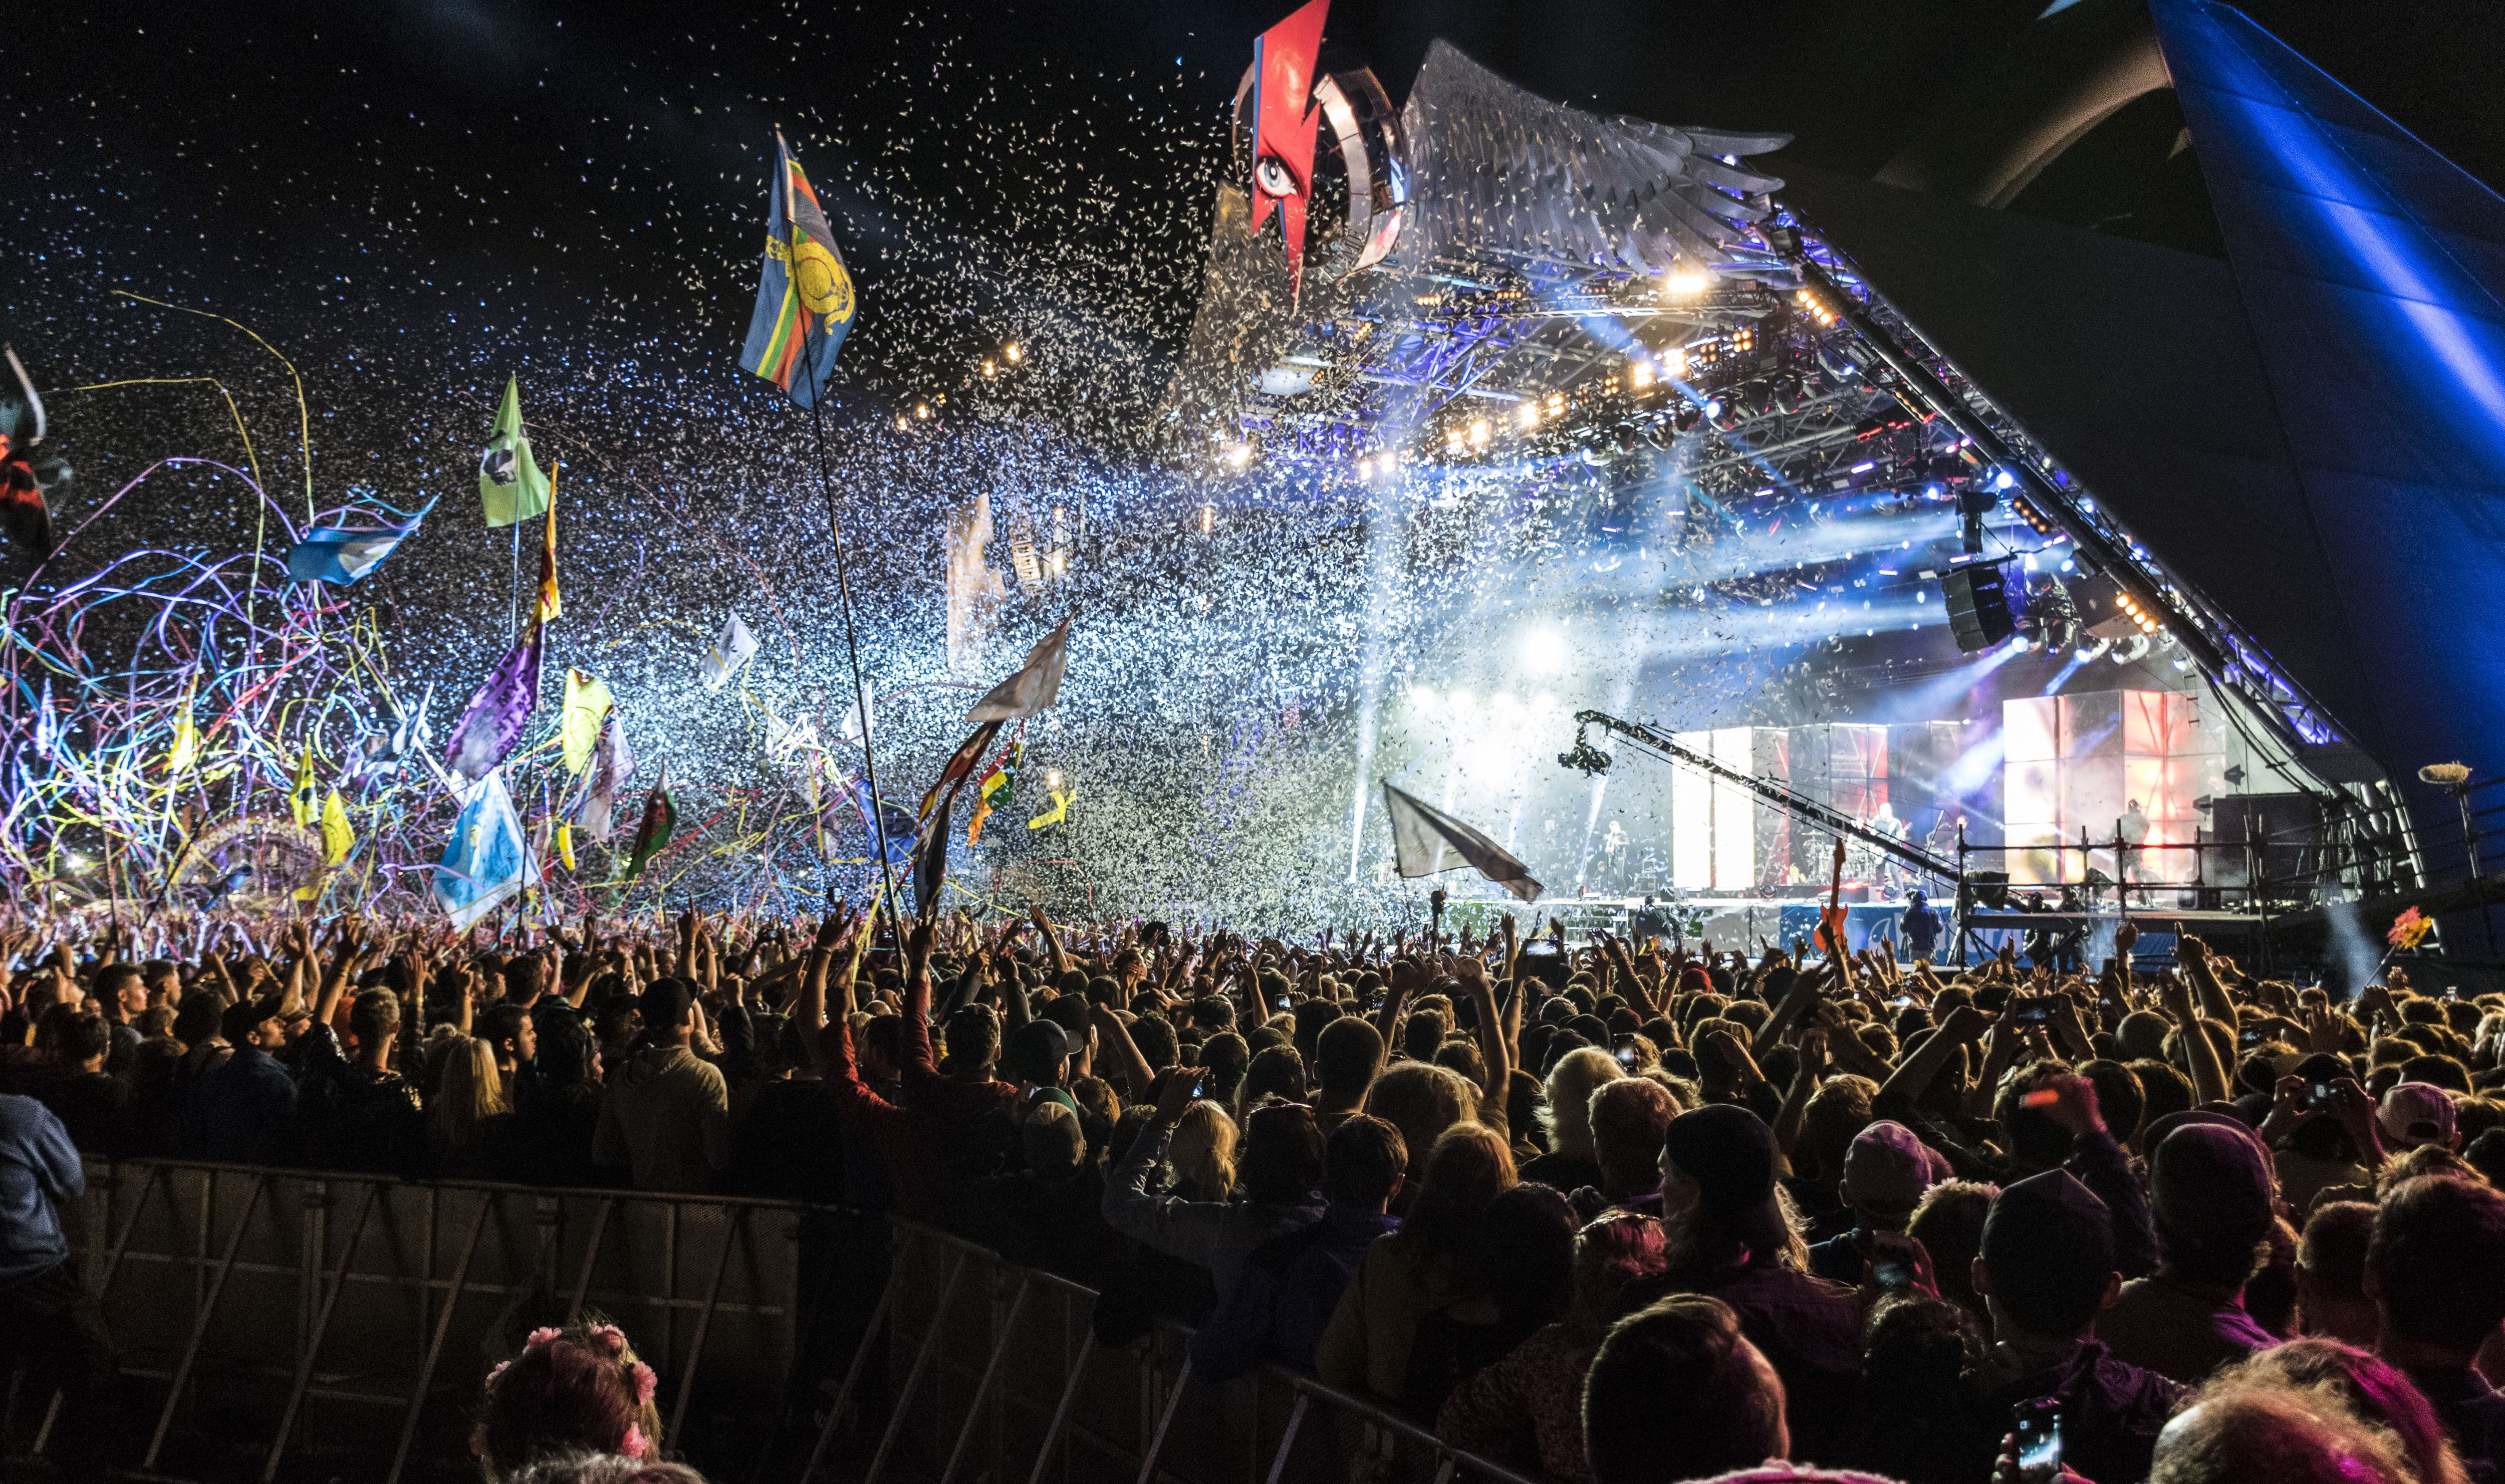 Night time concert scene at Glastonbury